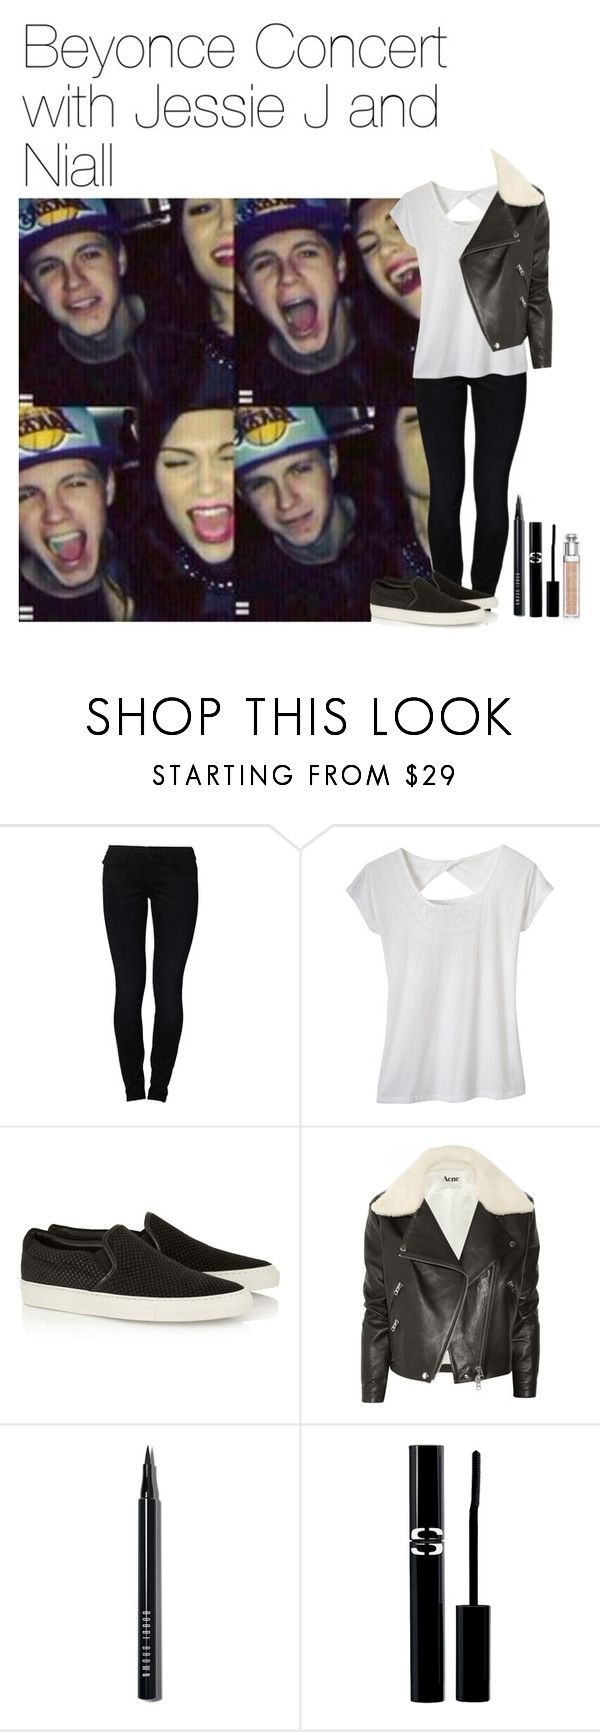 """Beyonce Concert with Jessie J and Niall"" by liamismybabe ❤ liked on Polyvore featuring True Religion, prAna, Common Projects, Acne Studios, Bobbi Brown Cosmetics, Sisley Paris, Christian Dior, NiallHoran and JessieJ"